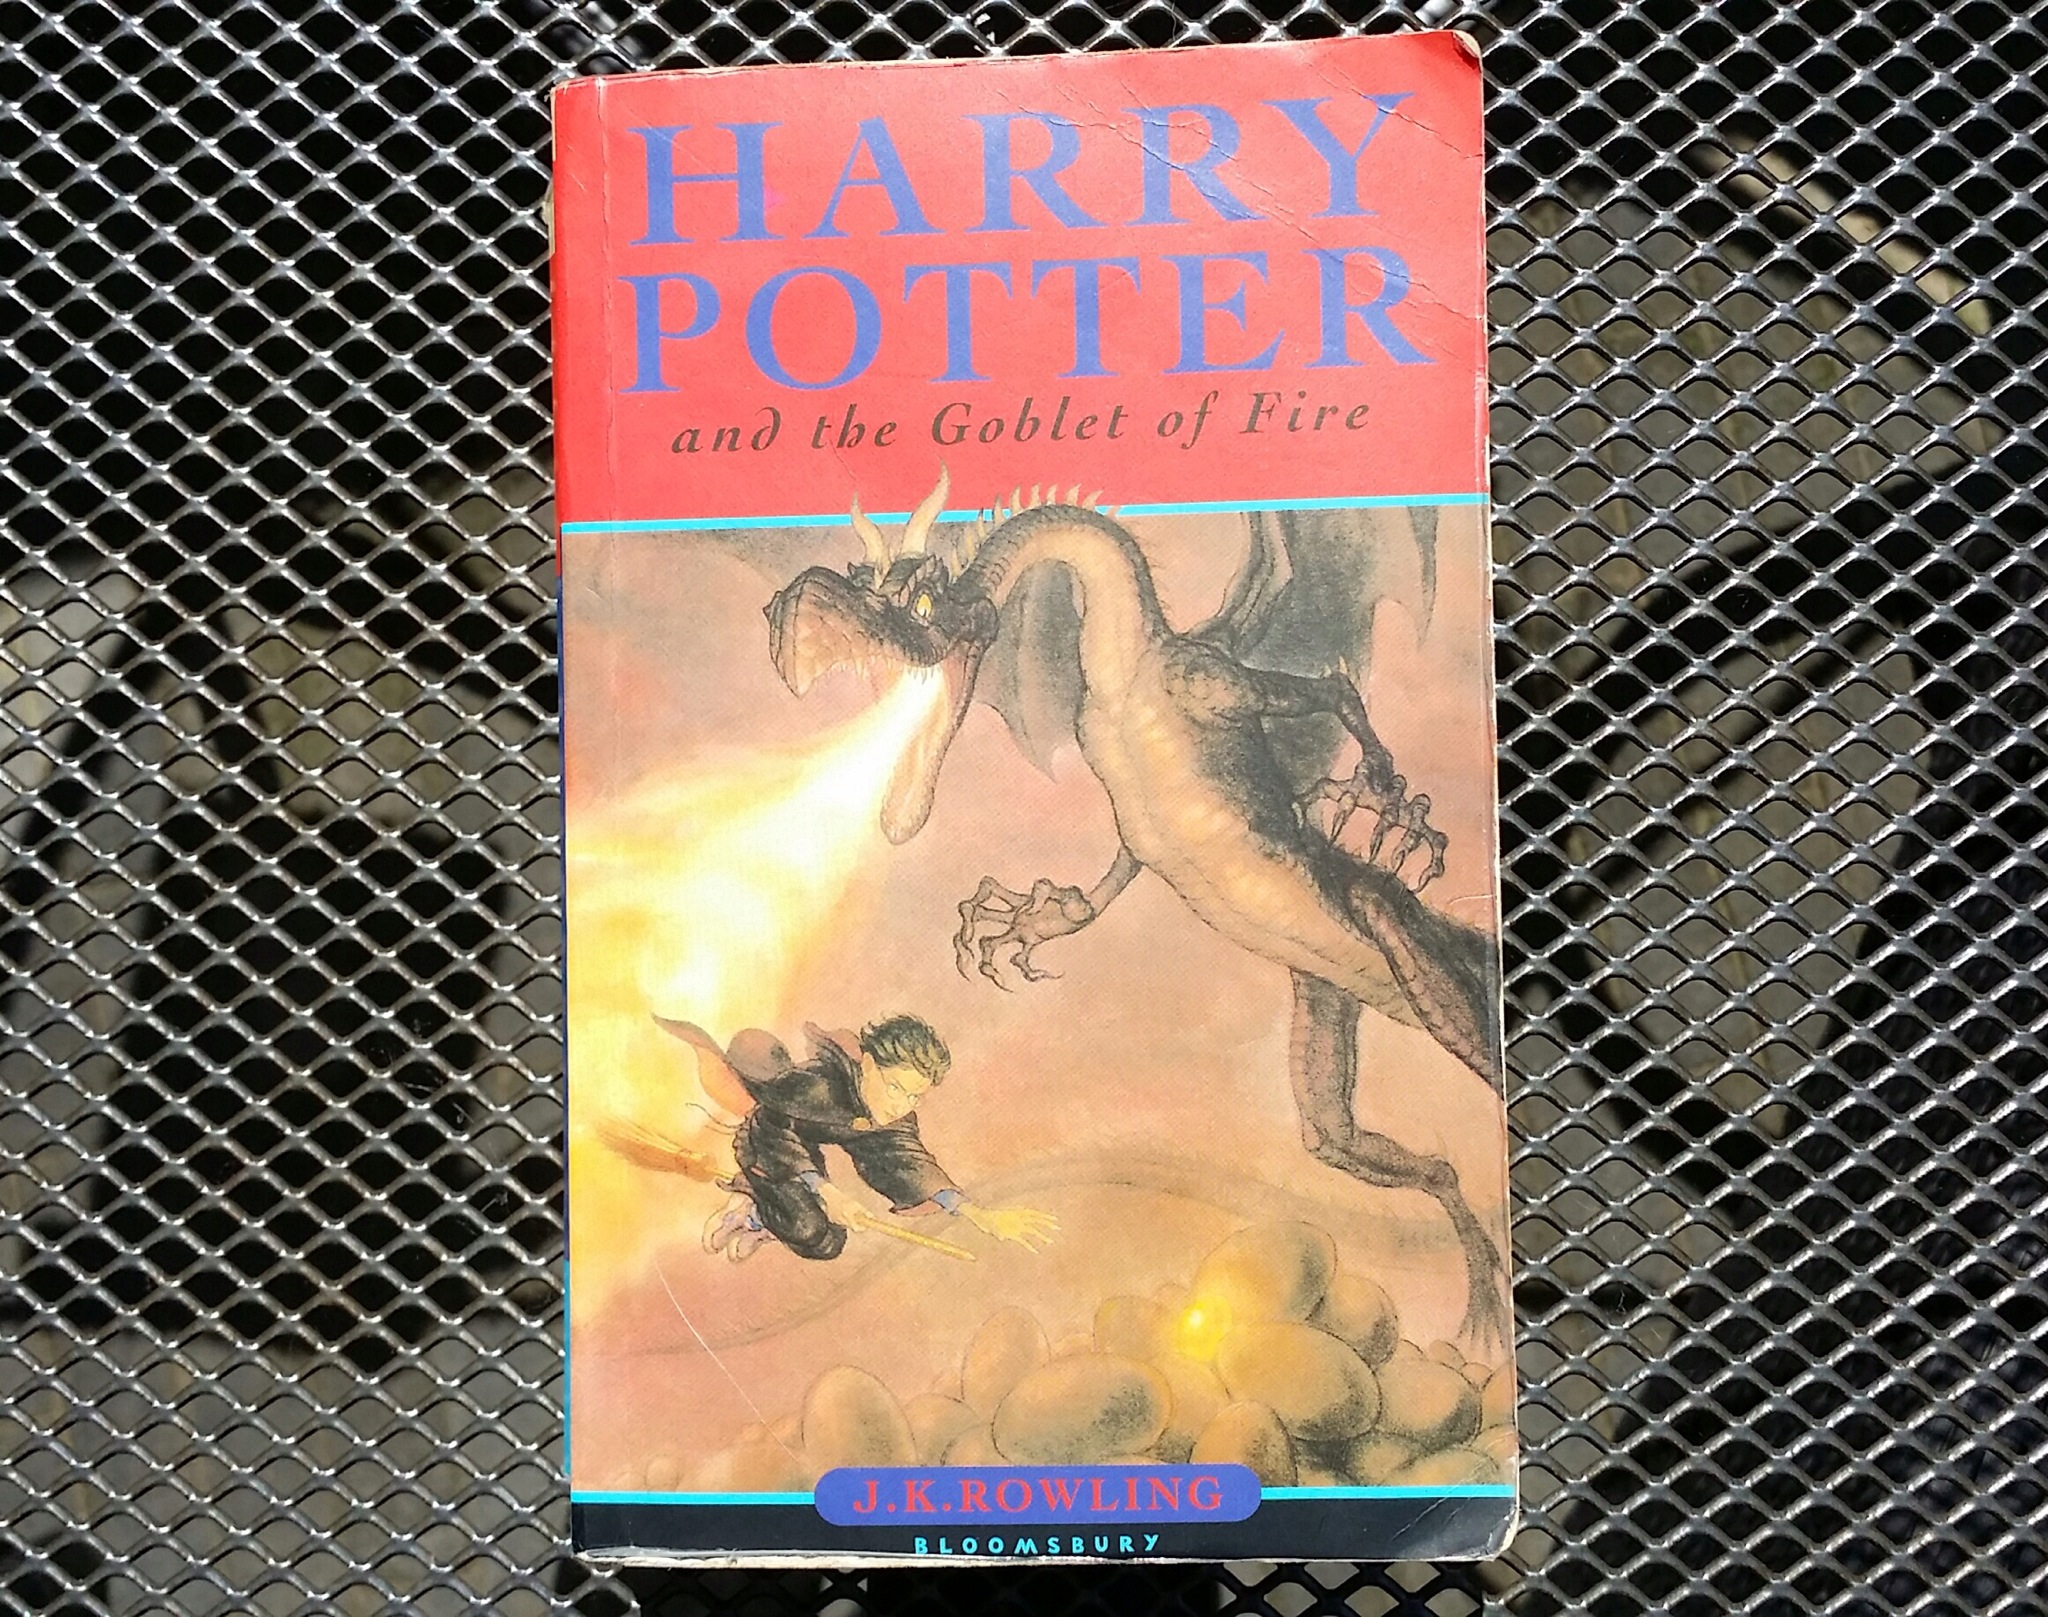 Tanya's 101 ~ Book No. 4 - Harry Potter and the Goblet of Fire | J.K. Rowling | Book Review